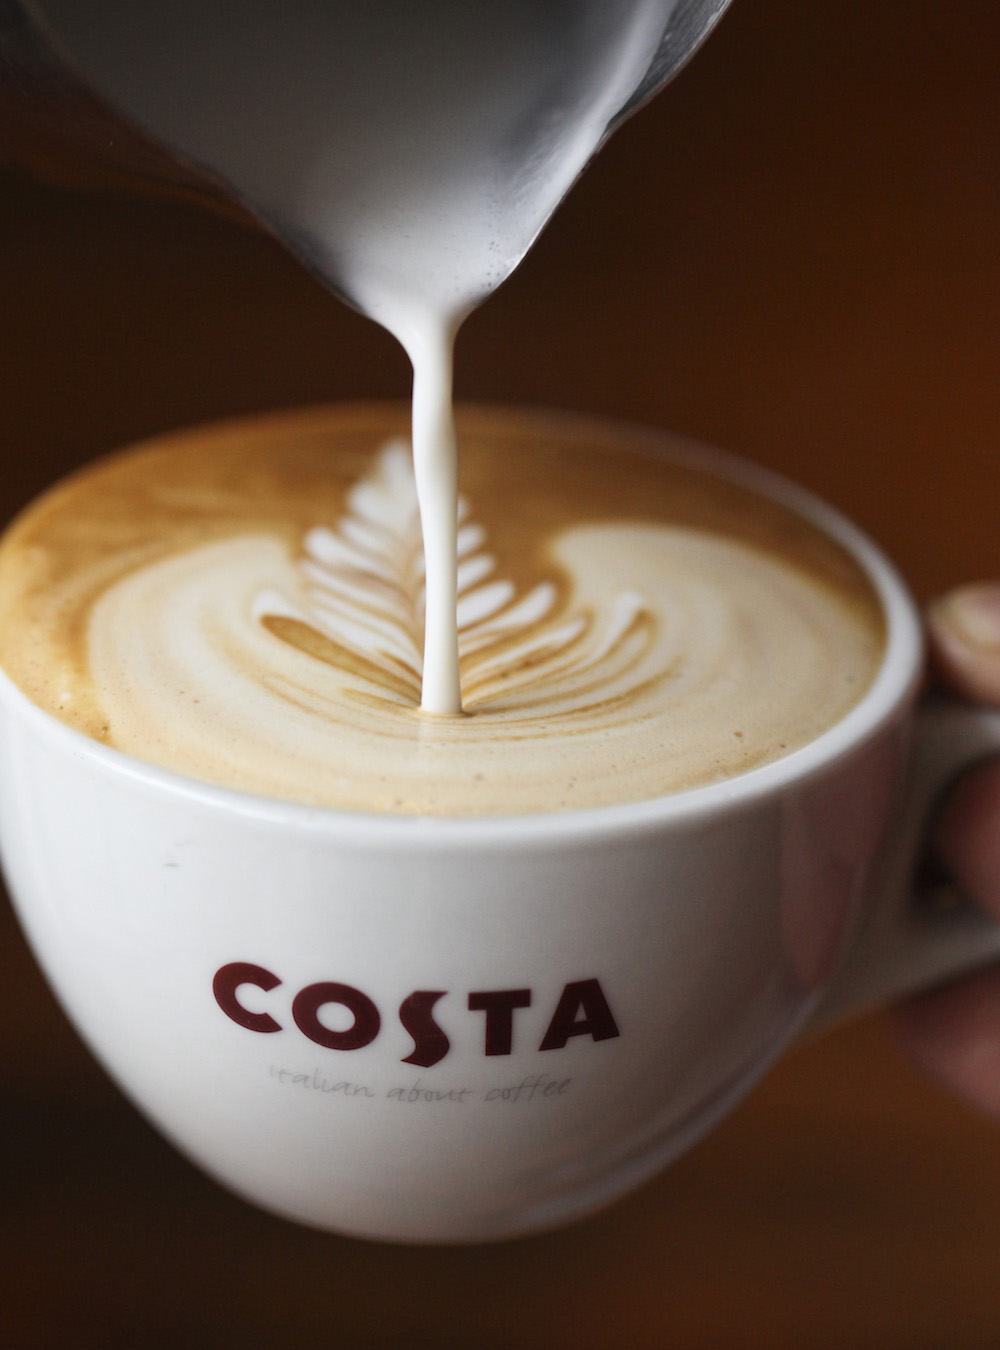 Costa Coffee Offers Free 'Babyccinos' to Lure in Families